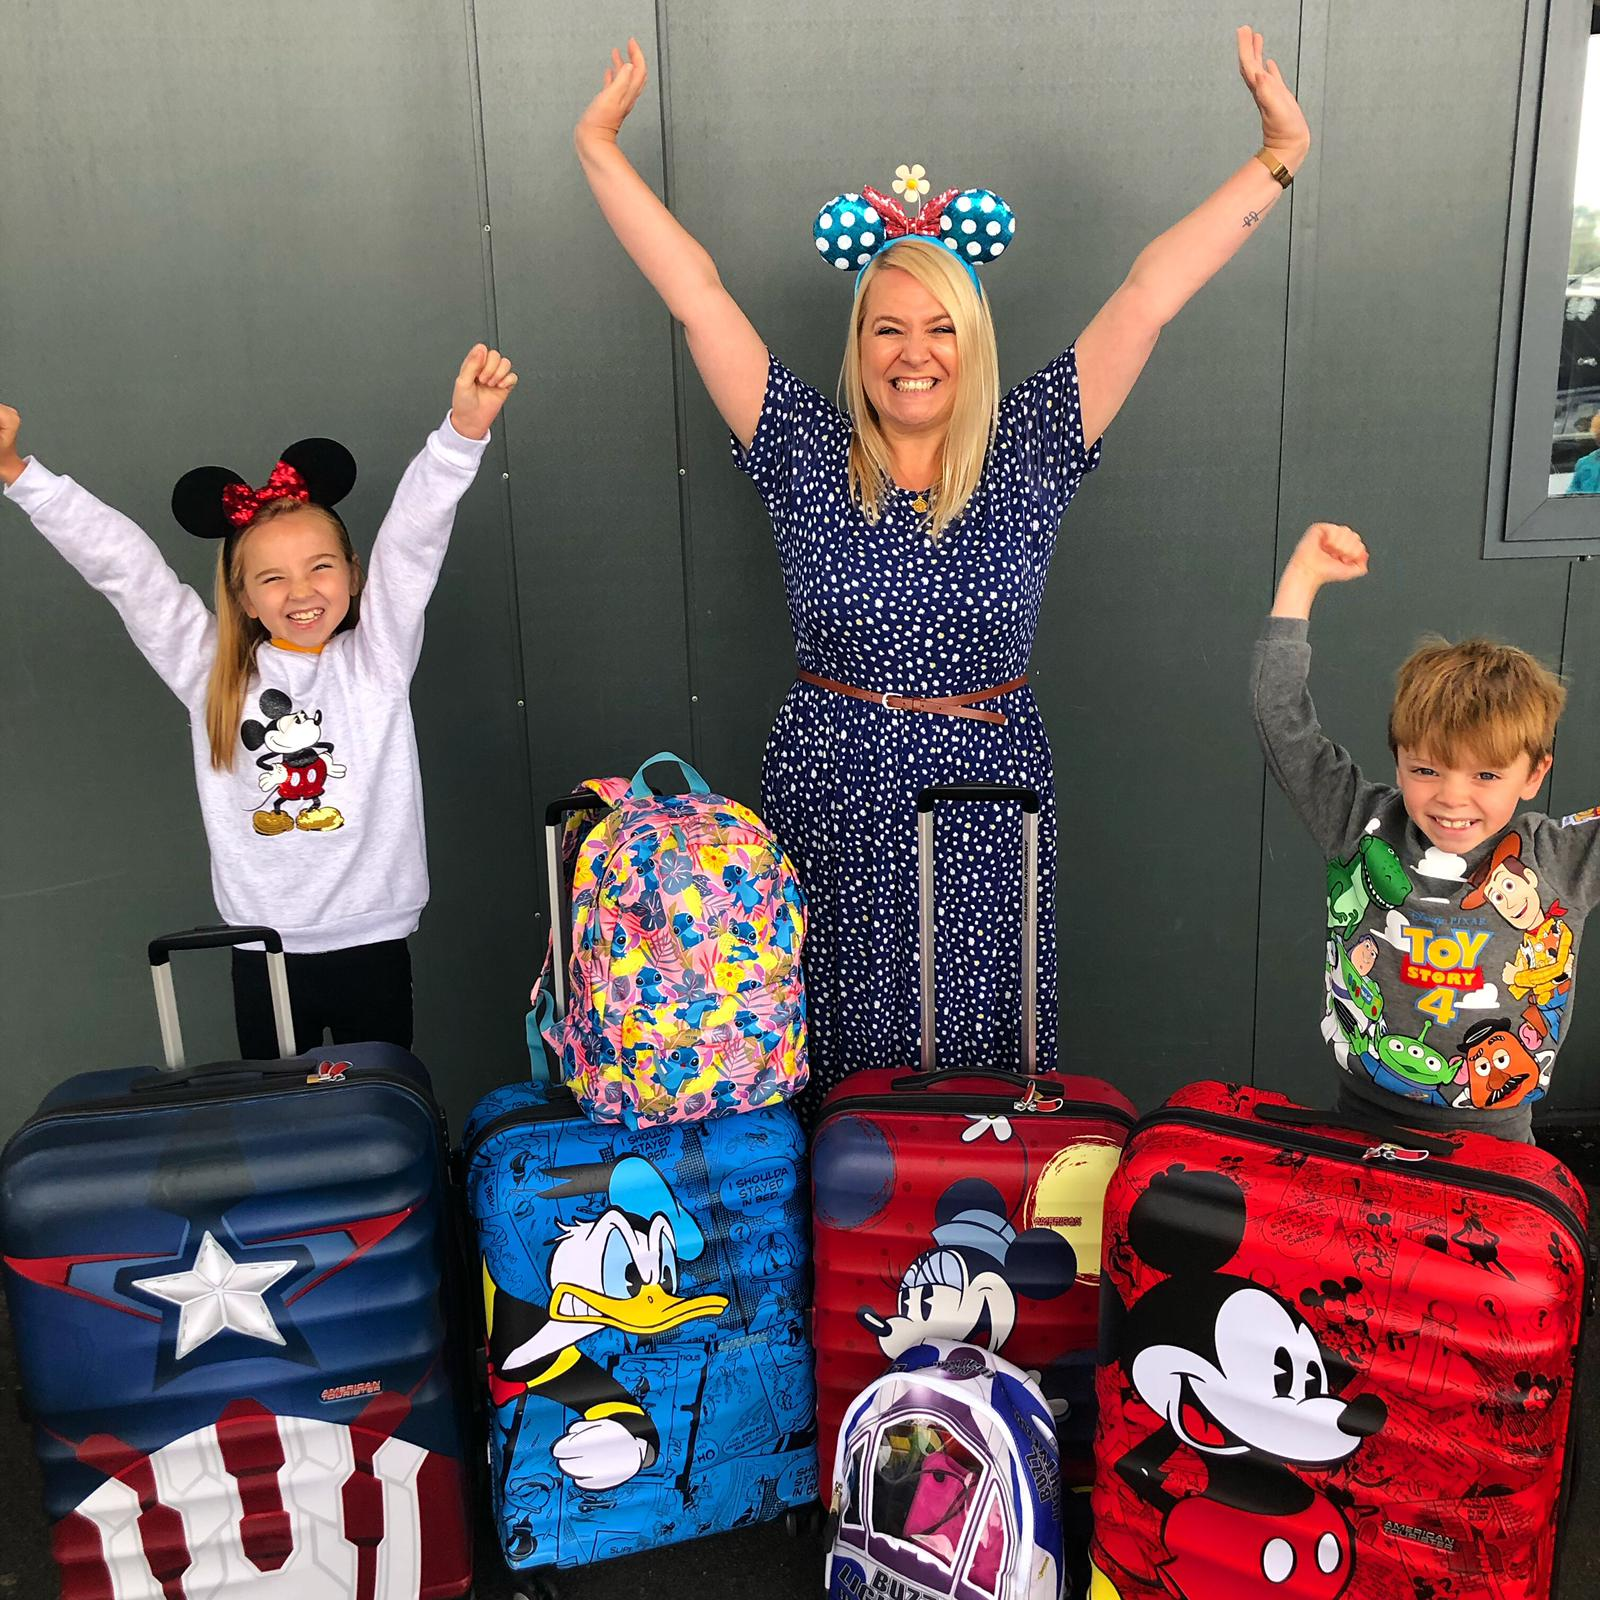 10 Things To Pack In Your Walt Disney World Bag!